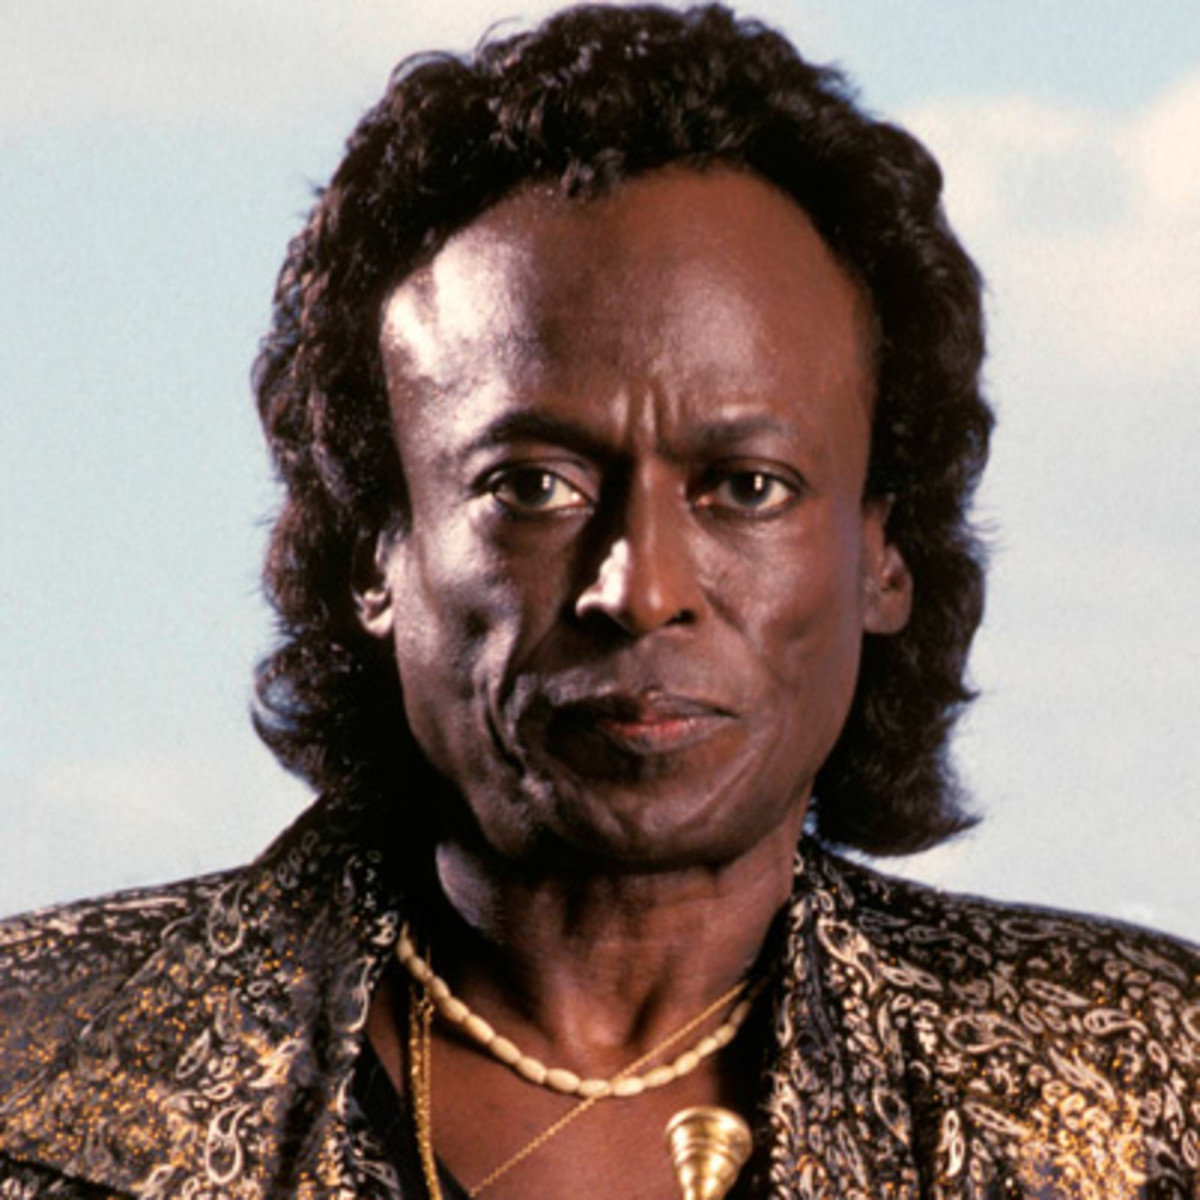 the life and accomplishments of miles davis Download and read miles davis a biography miles davis a biography in undergoing this life, many people always try to do and get the best new knowledge, experience, lesson, and.